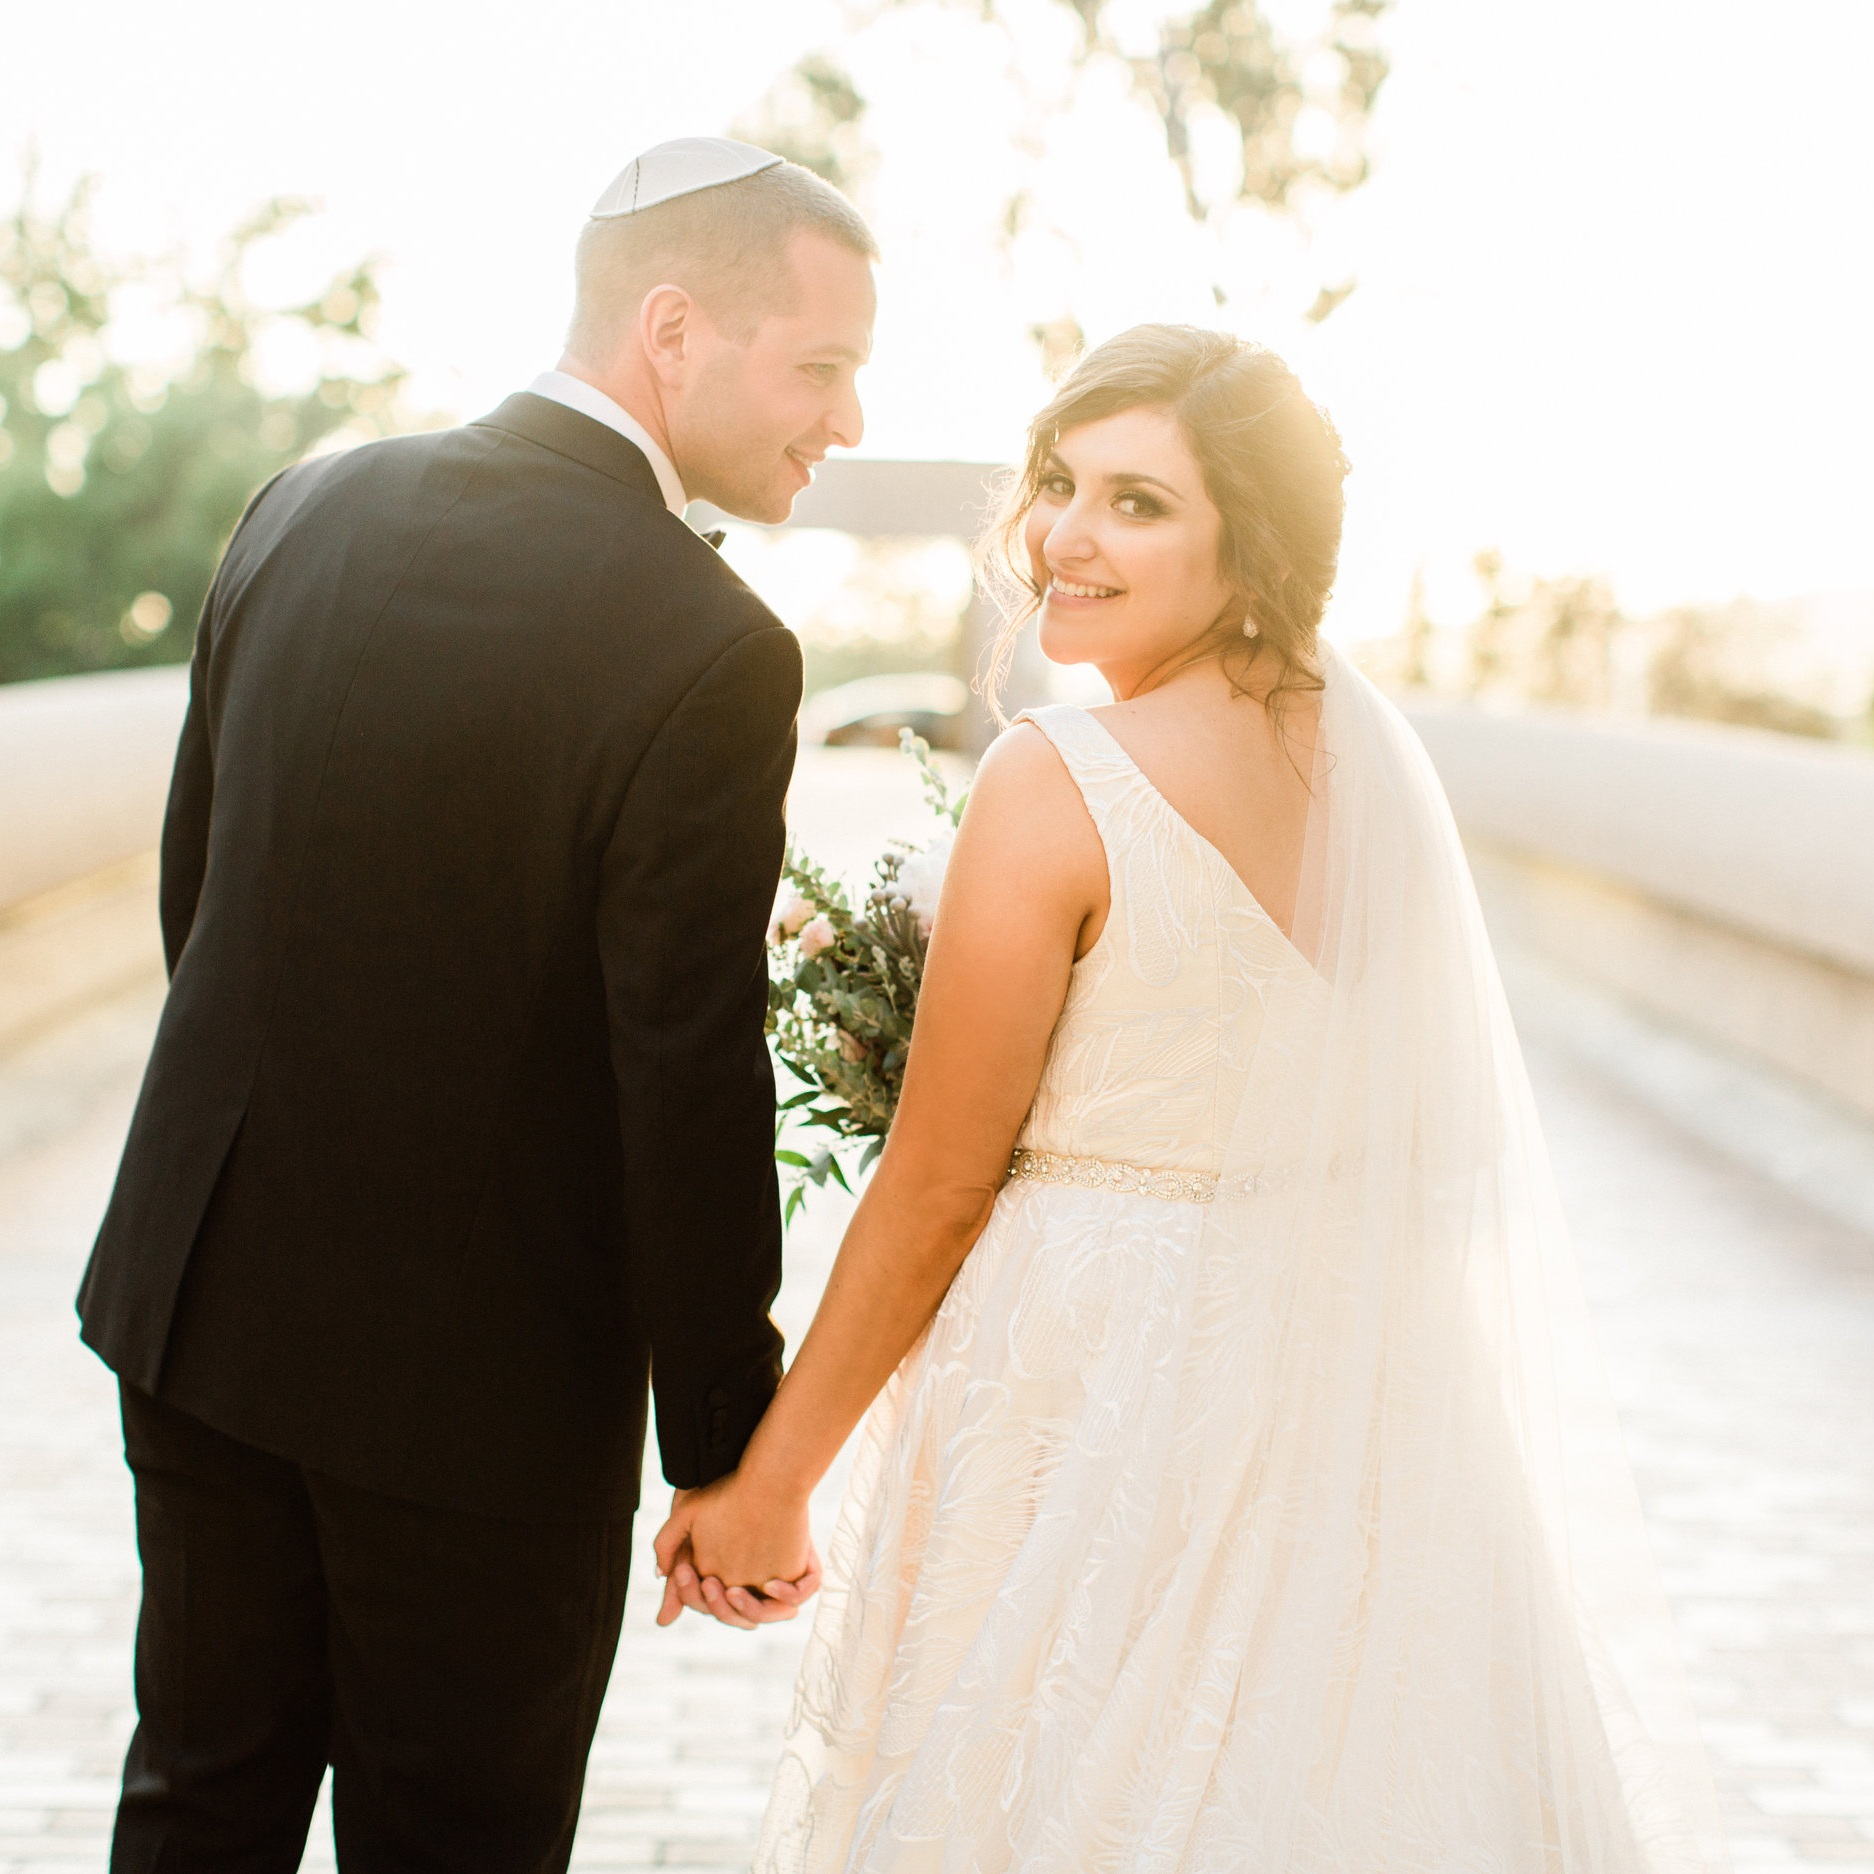 Romantic Jewish Wedding at Noor Pasadena  - southern california bride